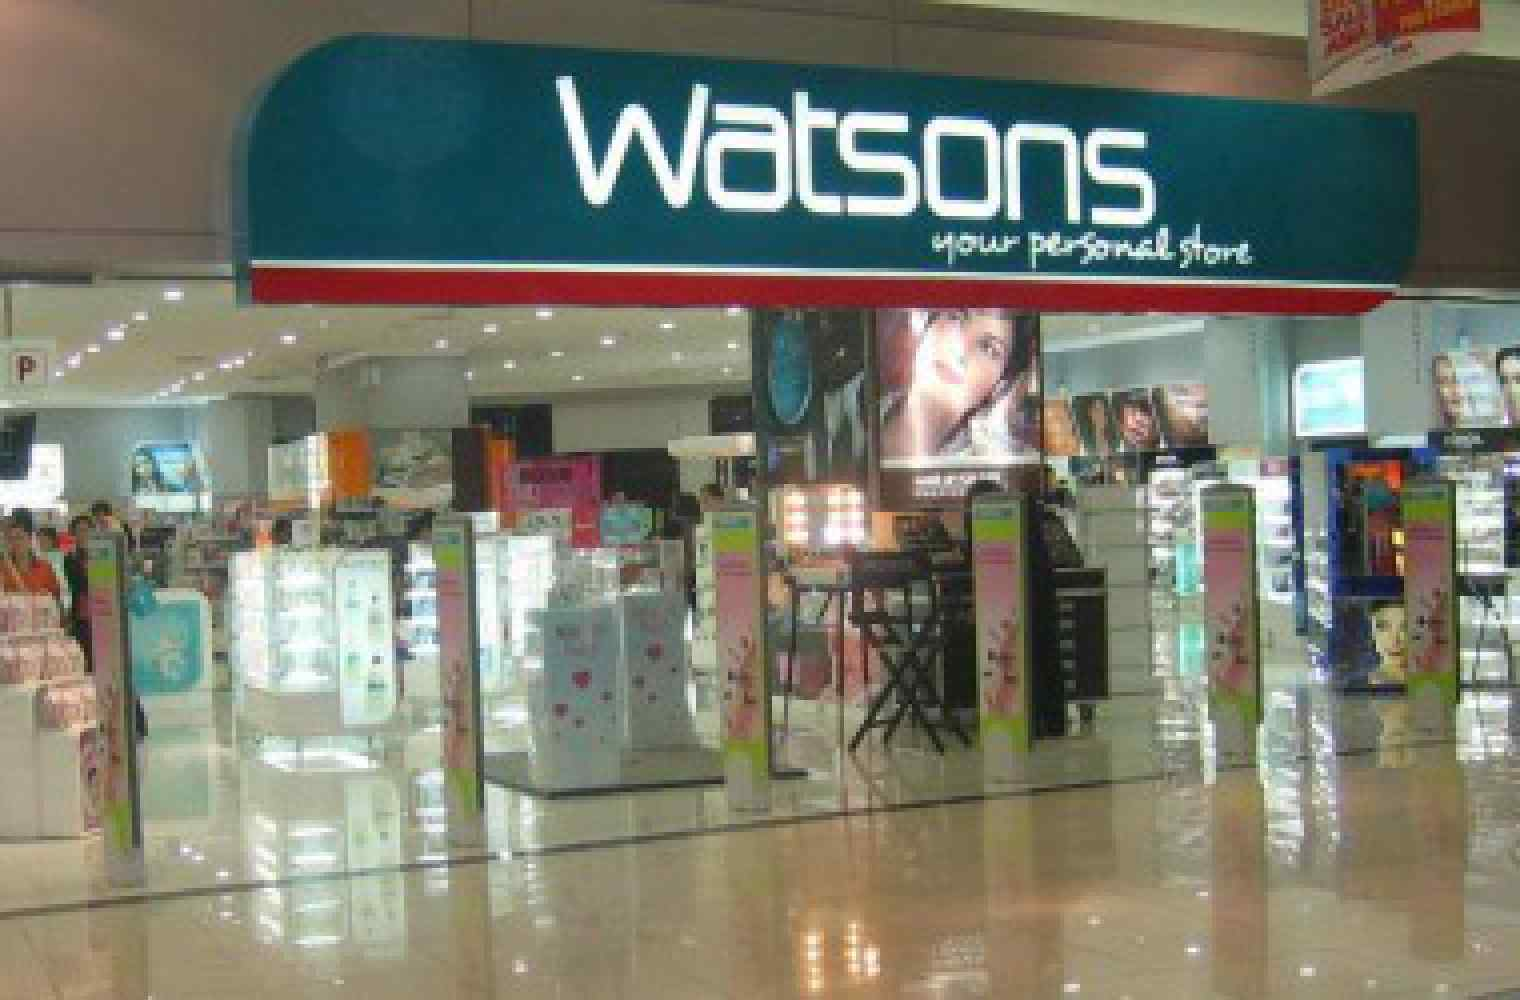 Watsons chain will open its biggest shop in Ukraine in Shopping and entertainment center Respublika